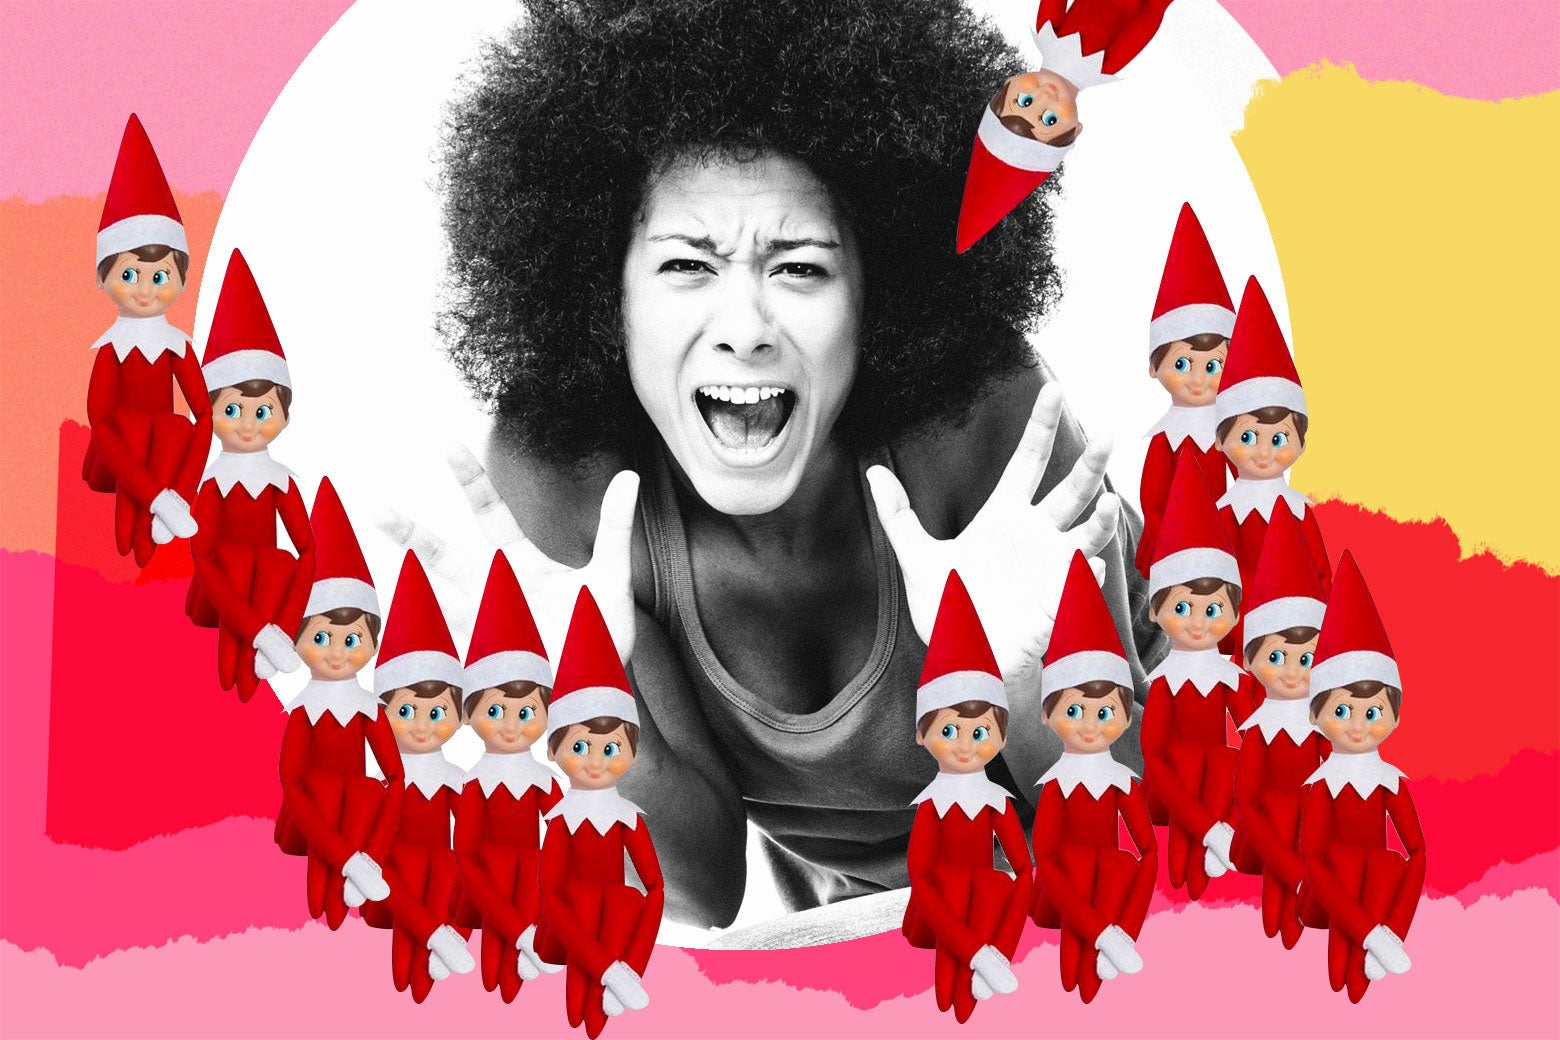 slate.com - Nicole Cliffe - Go to Hell, Elf on a Shelf